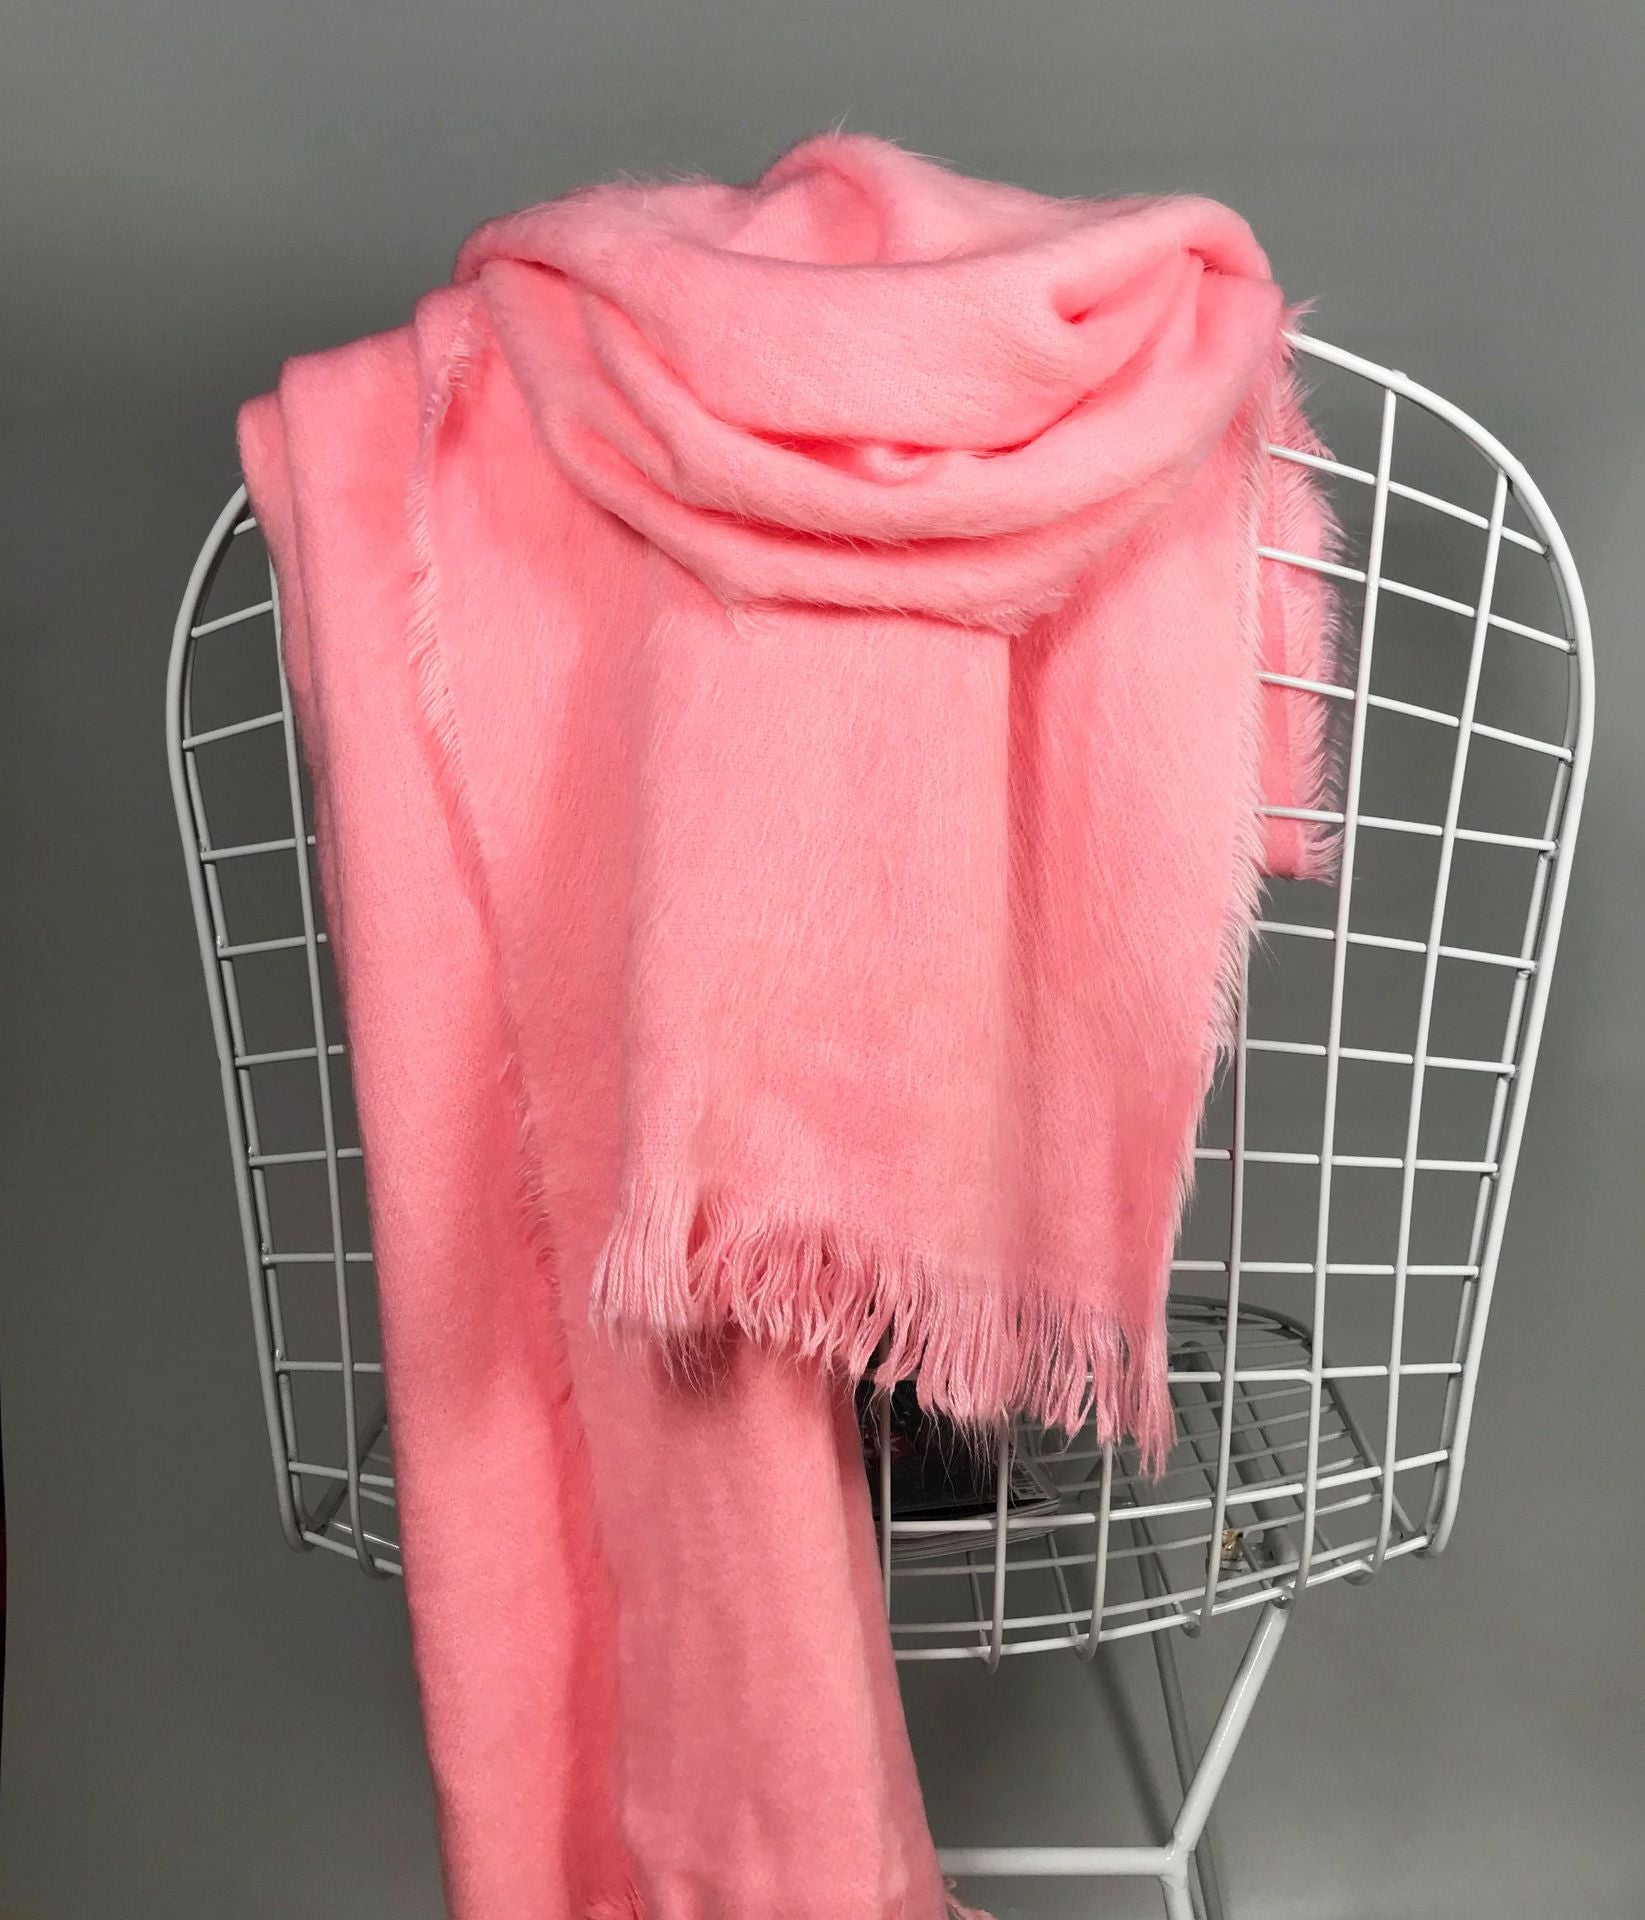 Fall Winter Casual Warm Cashmere-like Multifunctional Solid Color Overlength Cape/Scarf  For Women